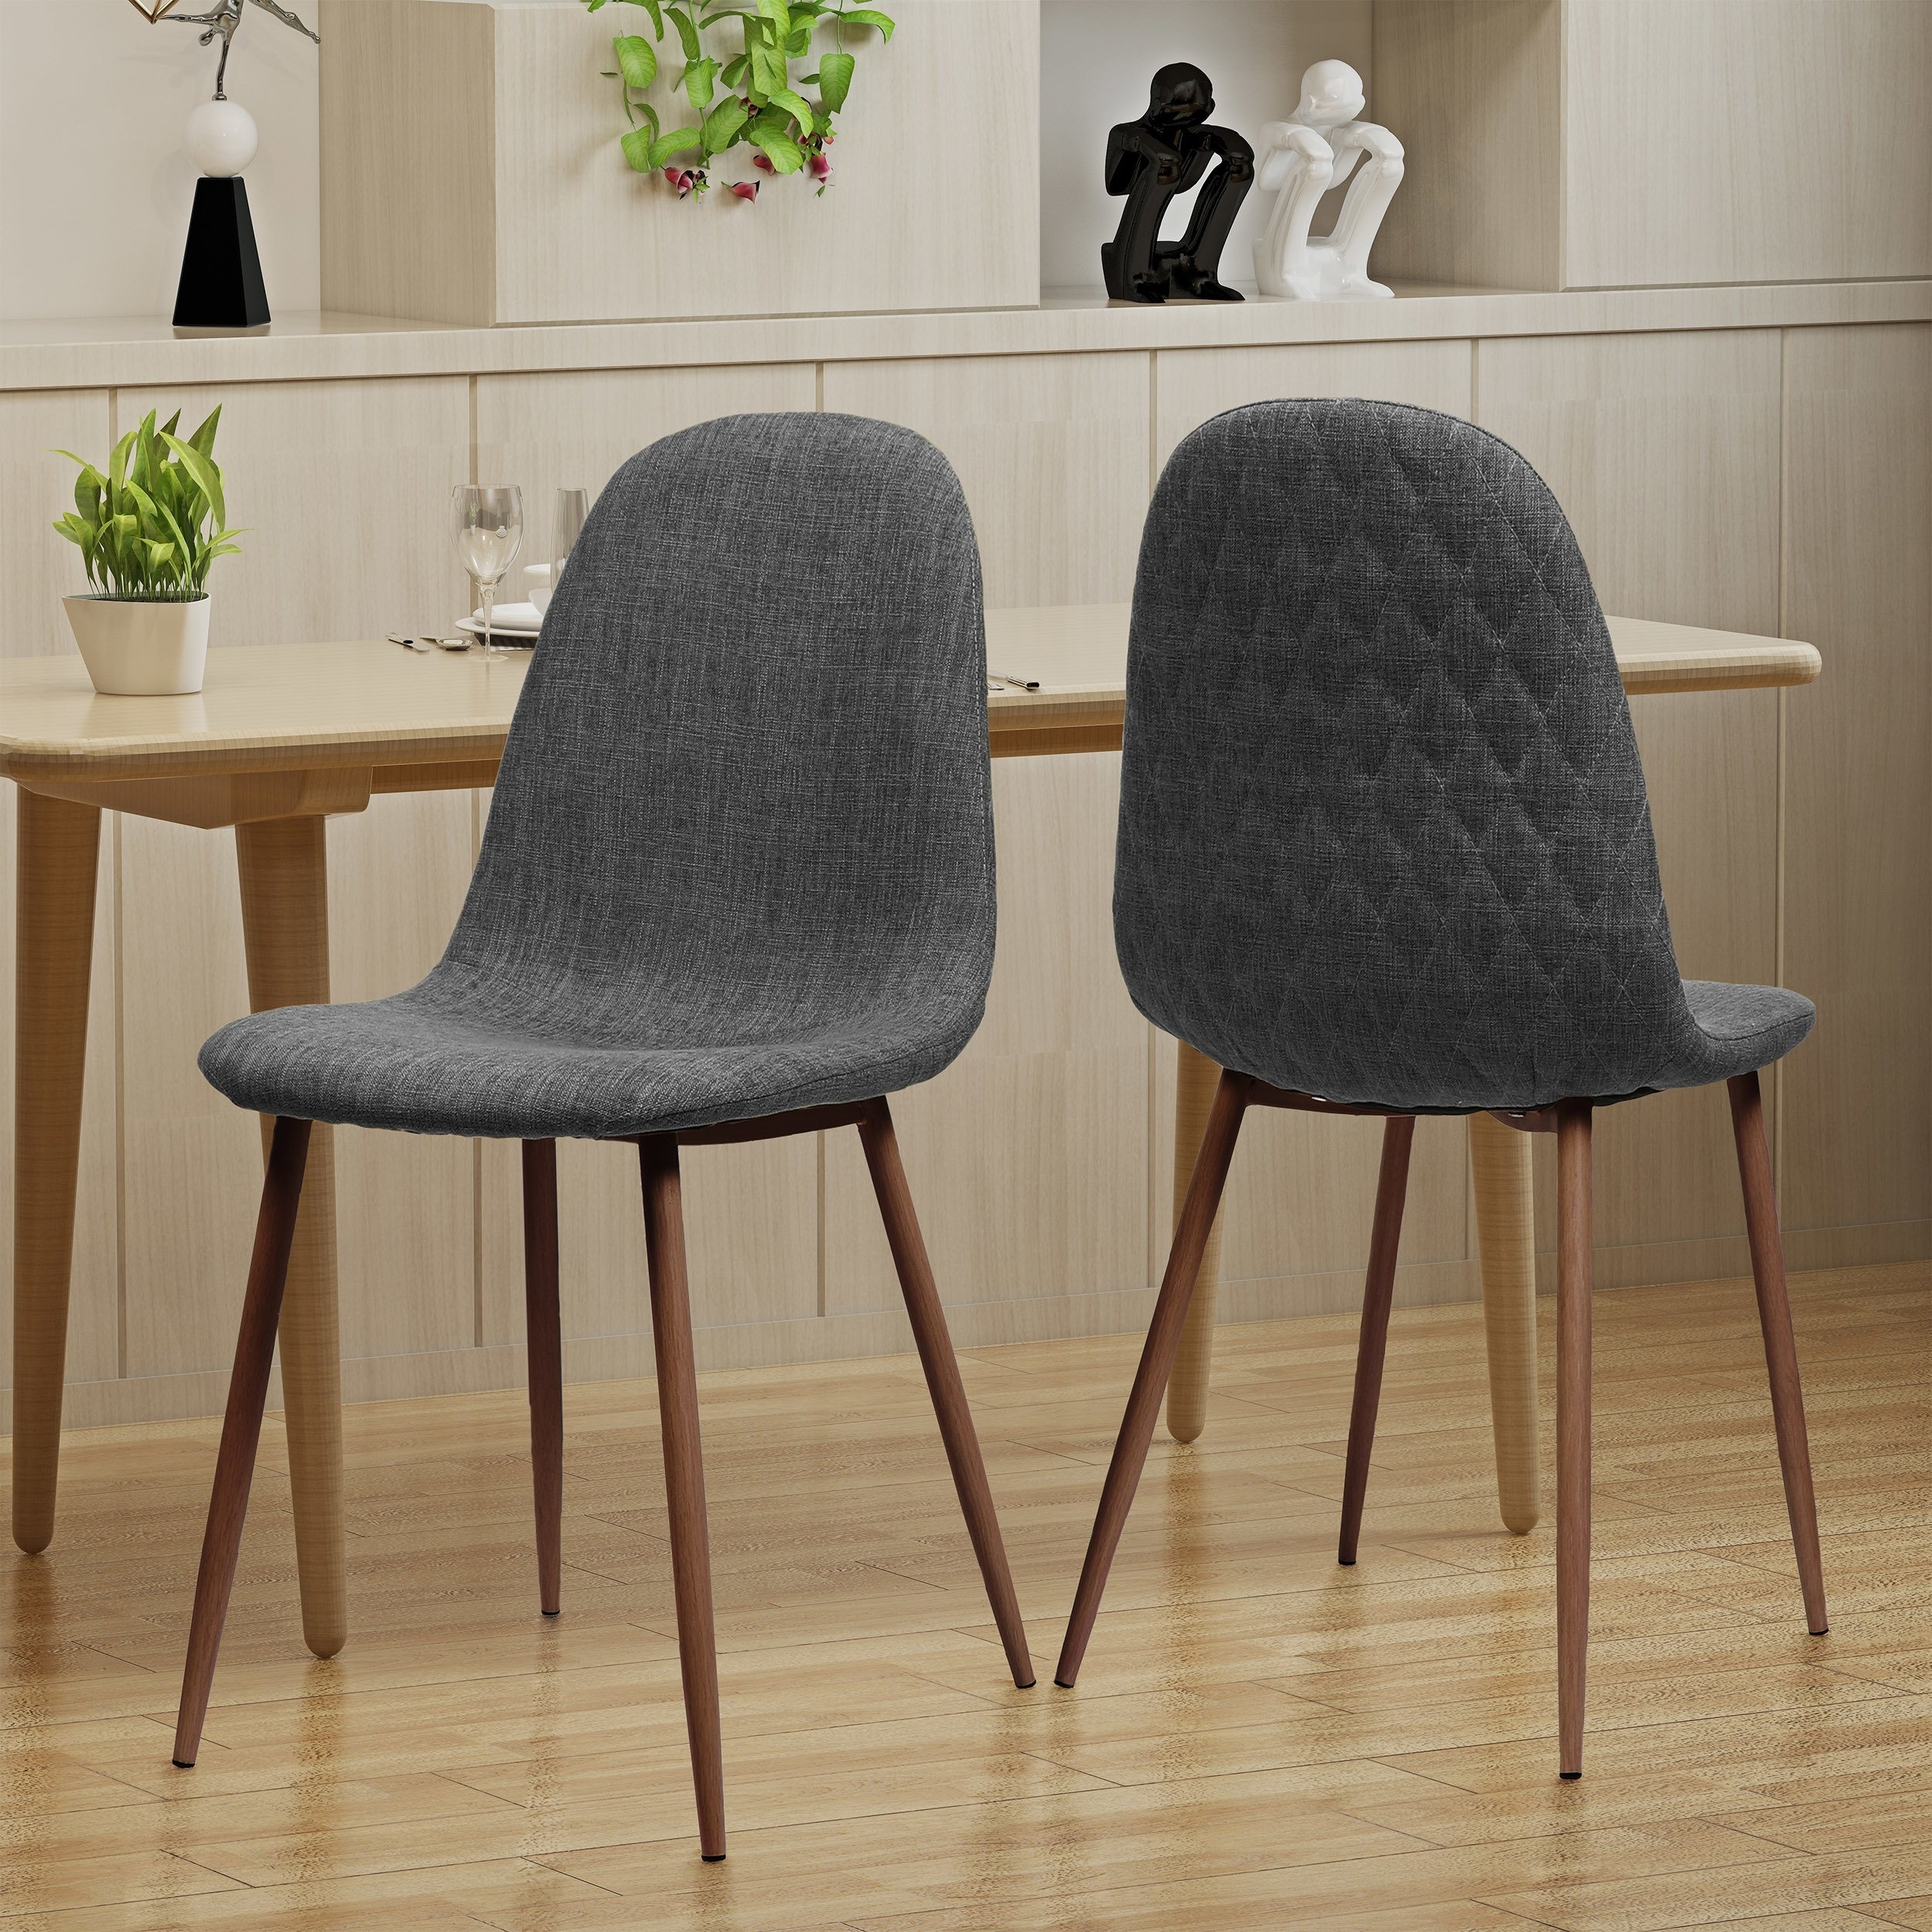 Shop Caden Mid Century Fabric Dining Chair (Set Of 2)Christopher Pertaining To Best And Newest Caden 6 Piece Dining Sets With Upholstered Side Chair (View 2 of 20)